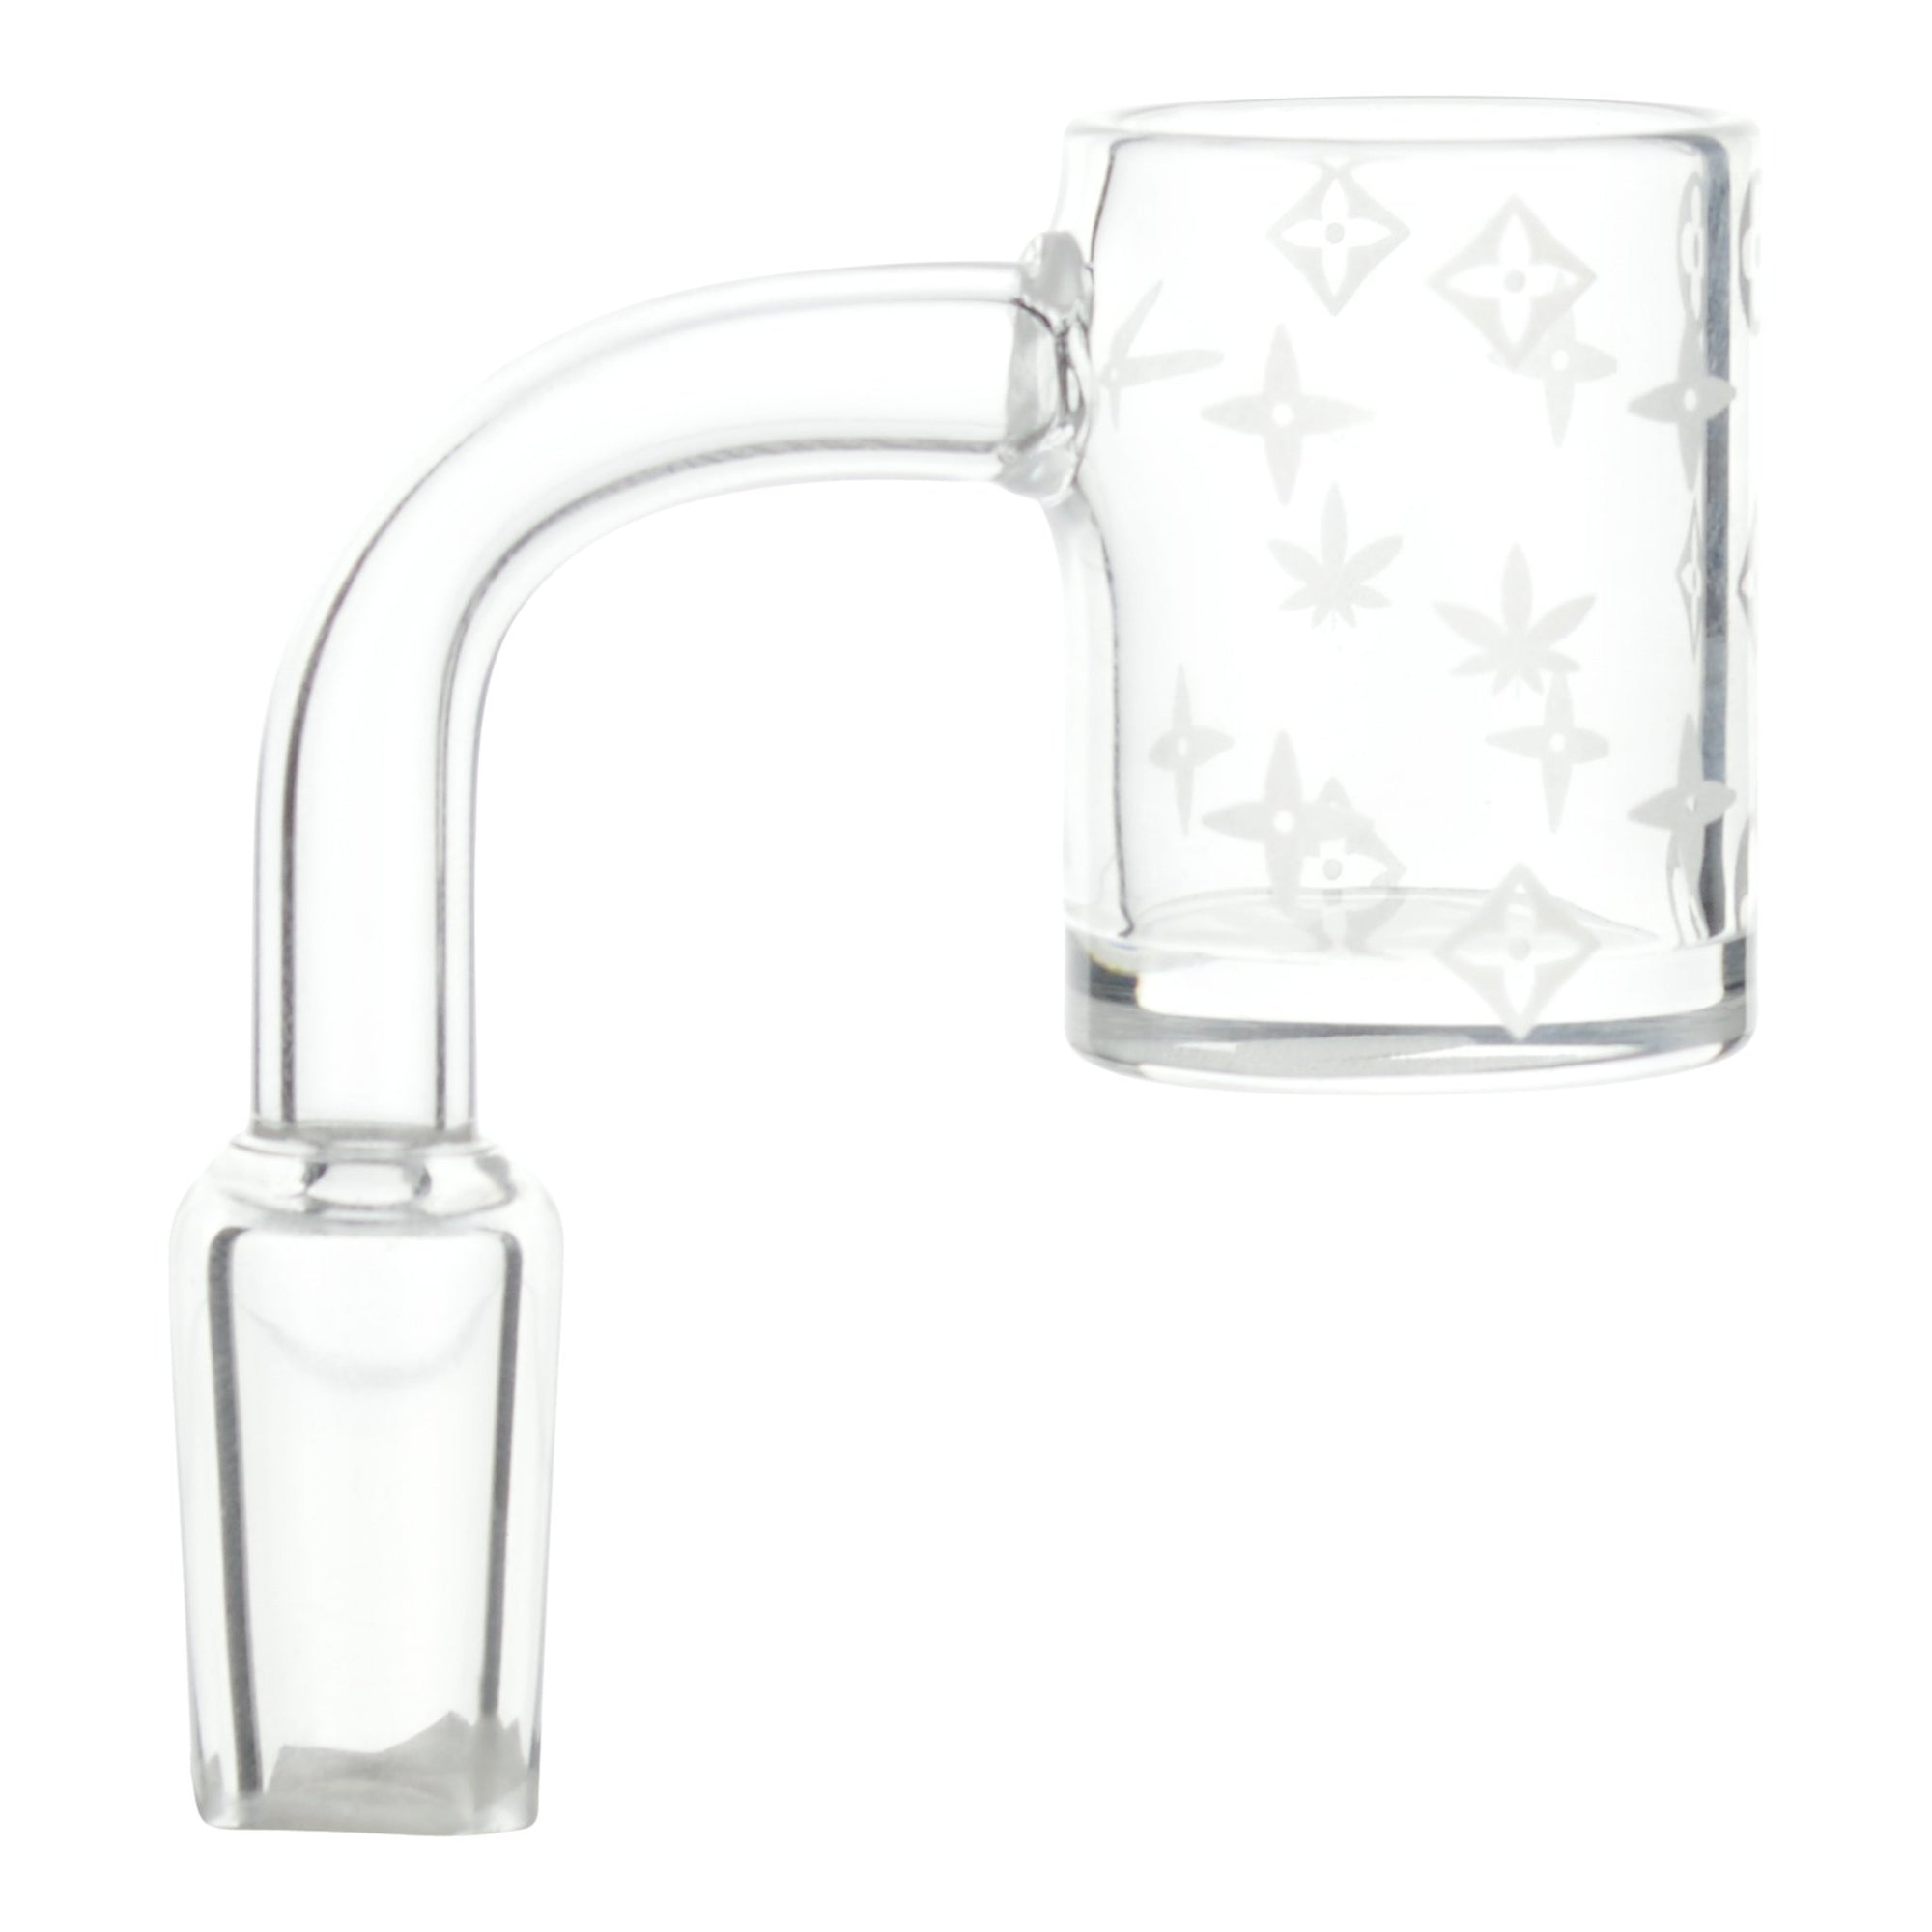 Handy clear glass banger for bong smoking accessory bent neck with dish and Louis Vuitton LV print user-friendly design